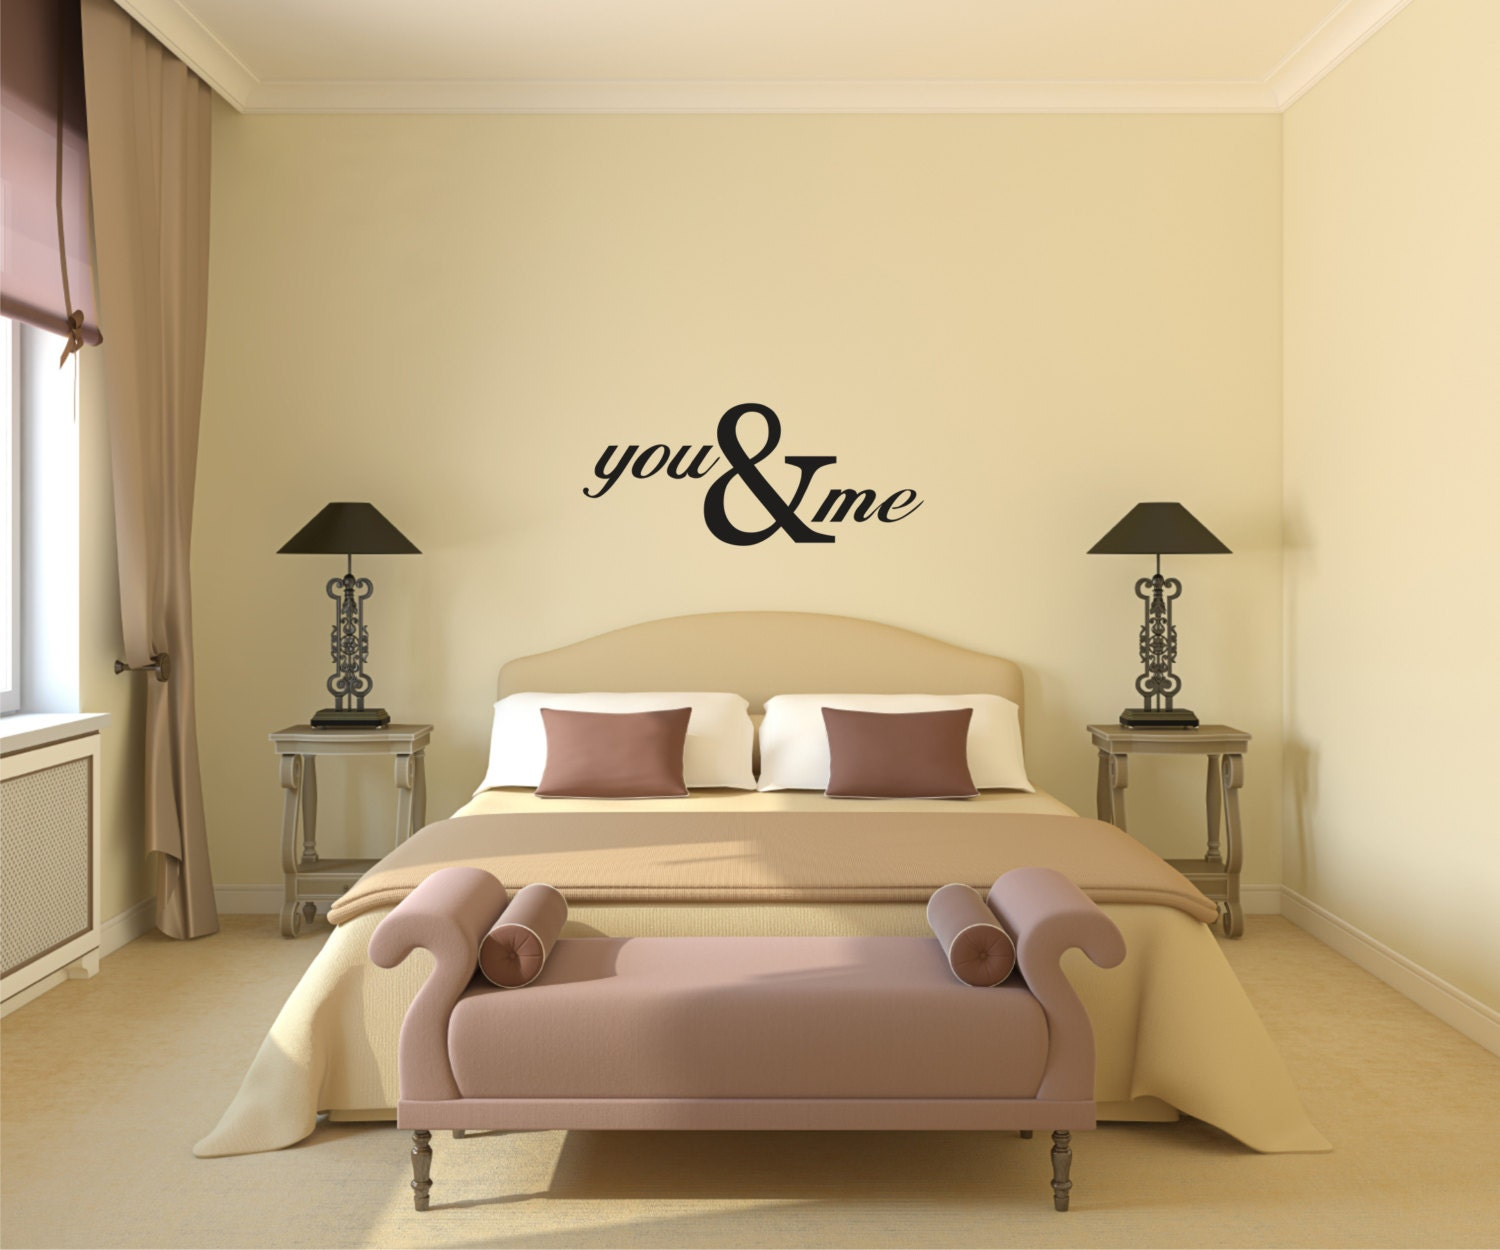 You & Me Vinyl Wall Decal Love Vinyl Wall Decal You and